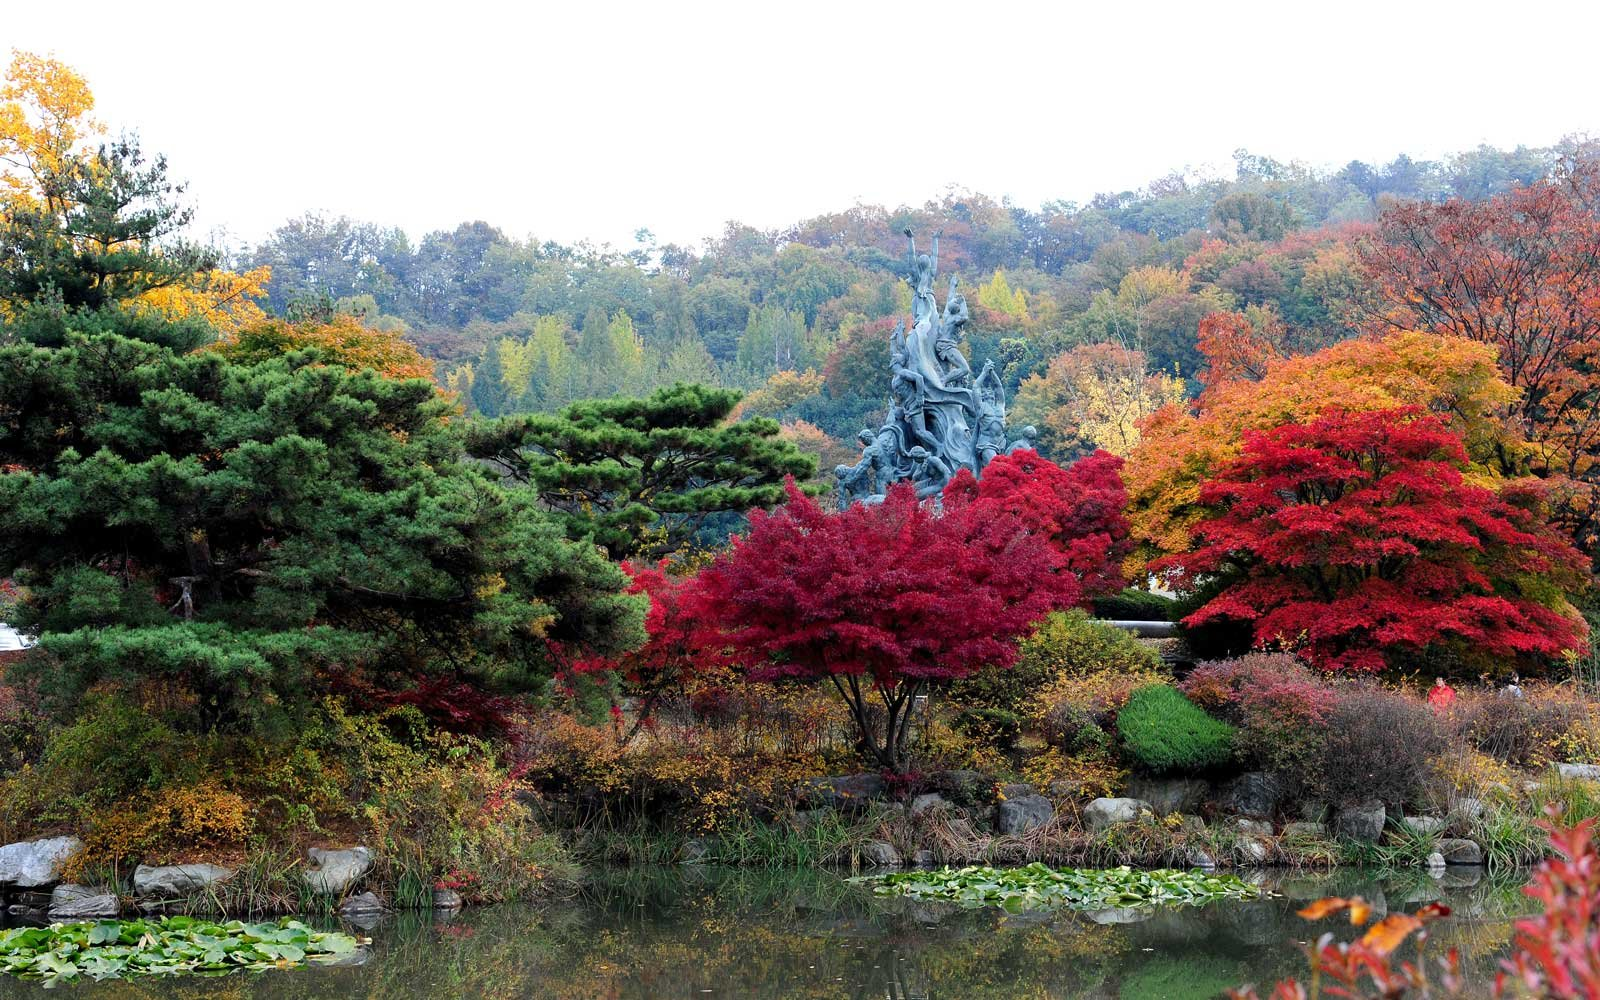 Autumn landscape of Seoul National Cemetery in Dongjak-dong, Seoul, South Korea